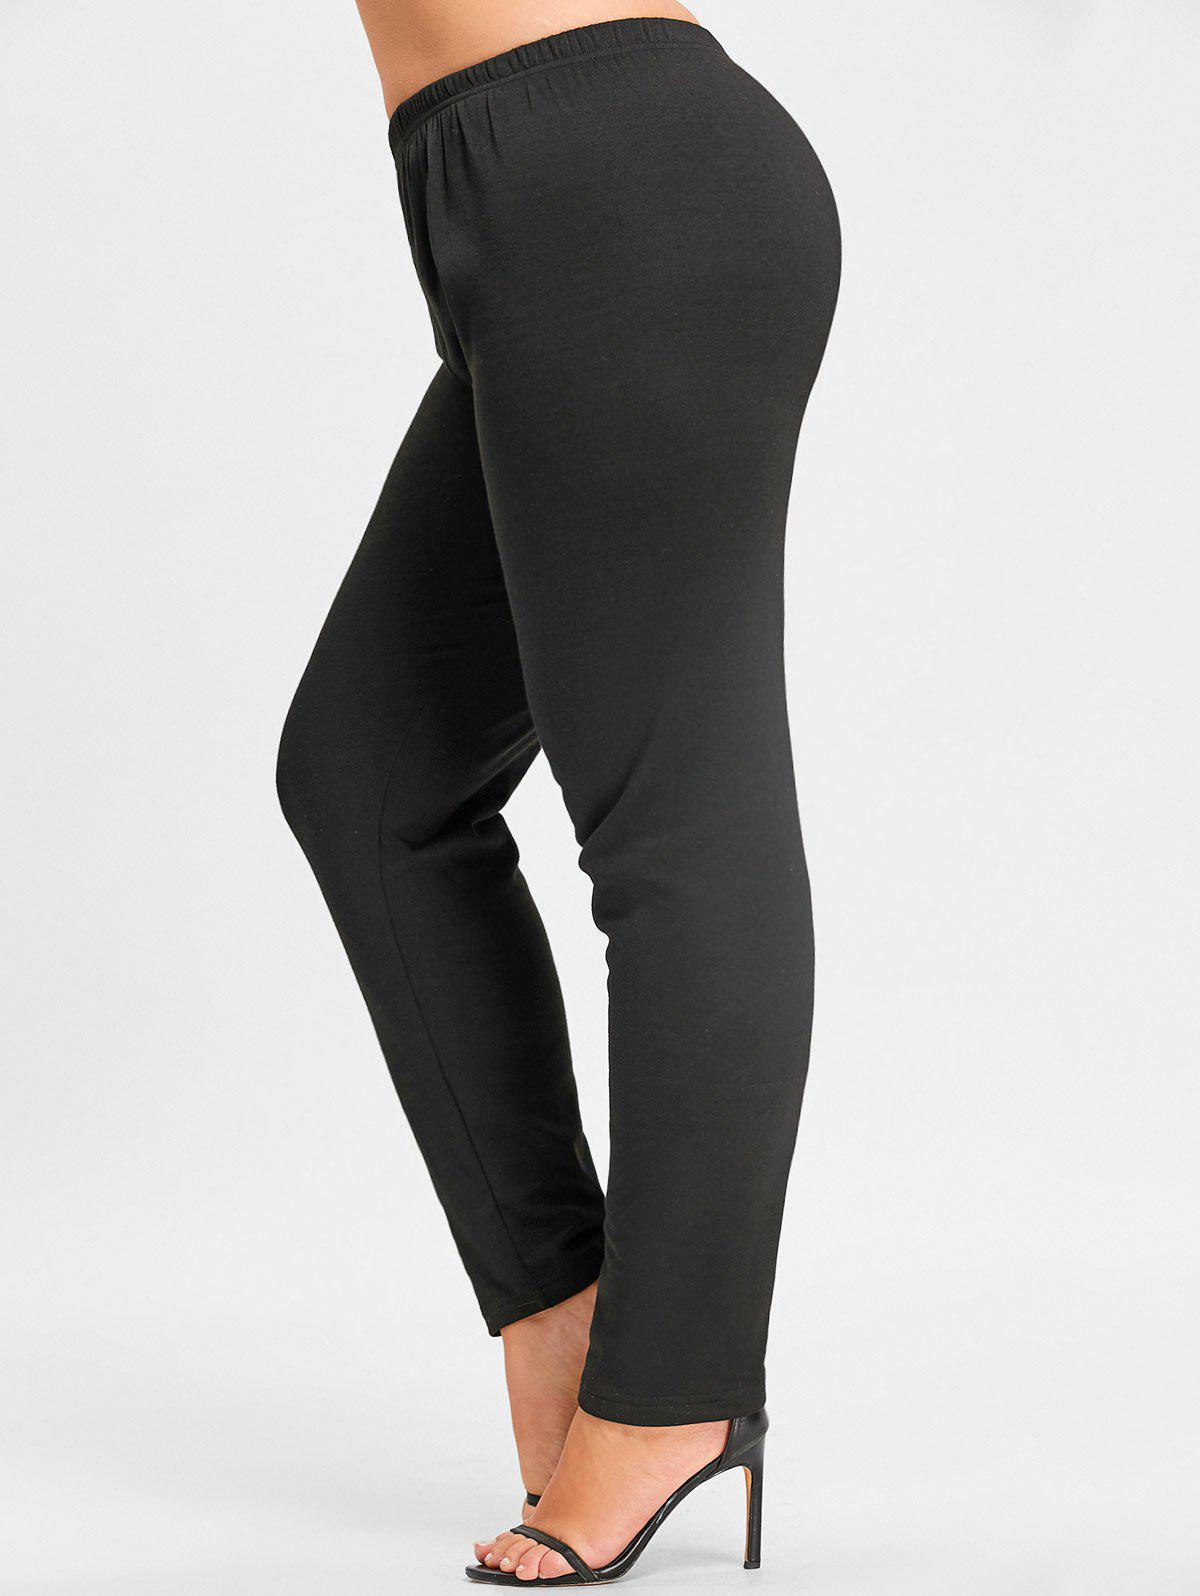 Plus Size Flocking Elastic Waist LeggingsWOMEN<br><br>Size: 3XL; Color: BLACK; Style: Casual; Length: Normal; Material: Acrylic,Polyester; Fit Type: Regular; Waist Type: High; Closure Type: Elastic Waist; Pattern Type: Solid; Pant Style: Pencil Pants; With Belt: No; Weight: 0.3750kg; Package Contents: 1 x Leggings;